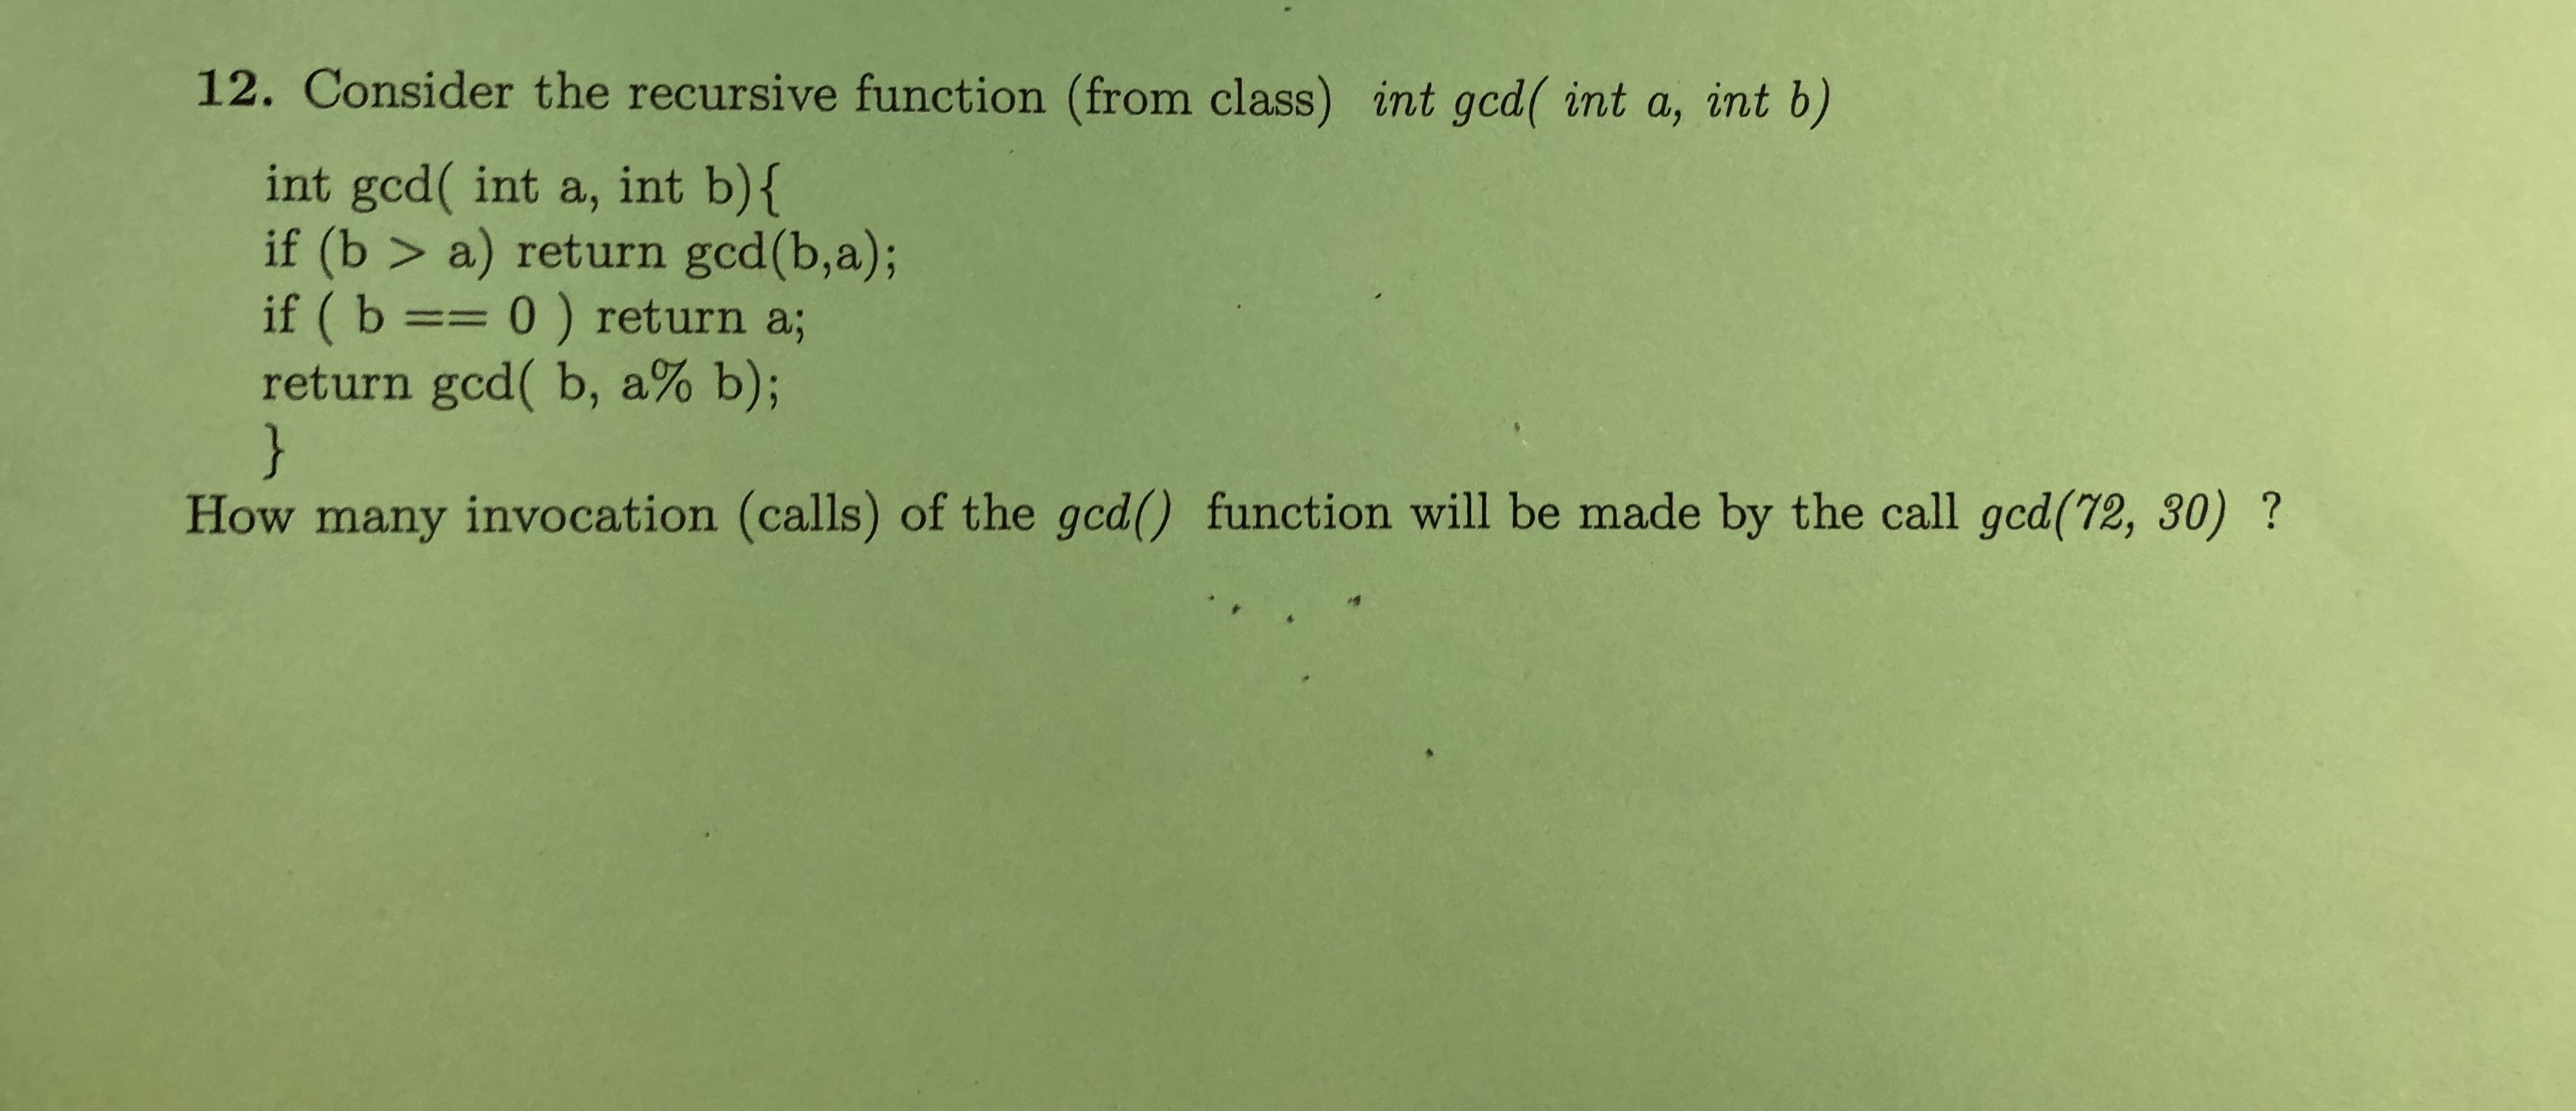 12. Consider the recursive function (from class) int gcd( int a, int b) int gcd( int a, int b){ if (b > a) return gcd(b,a); if ( b == 0 ) return a; return gcd( b, a% b); } How many invocation (calls) of the gcd() function will be made by the call gcd(72, 30) ?